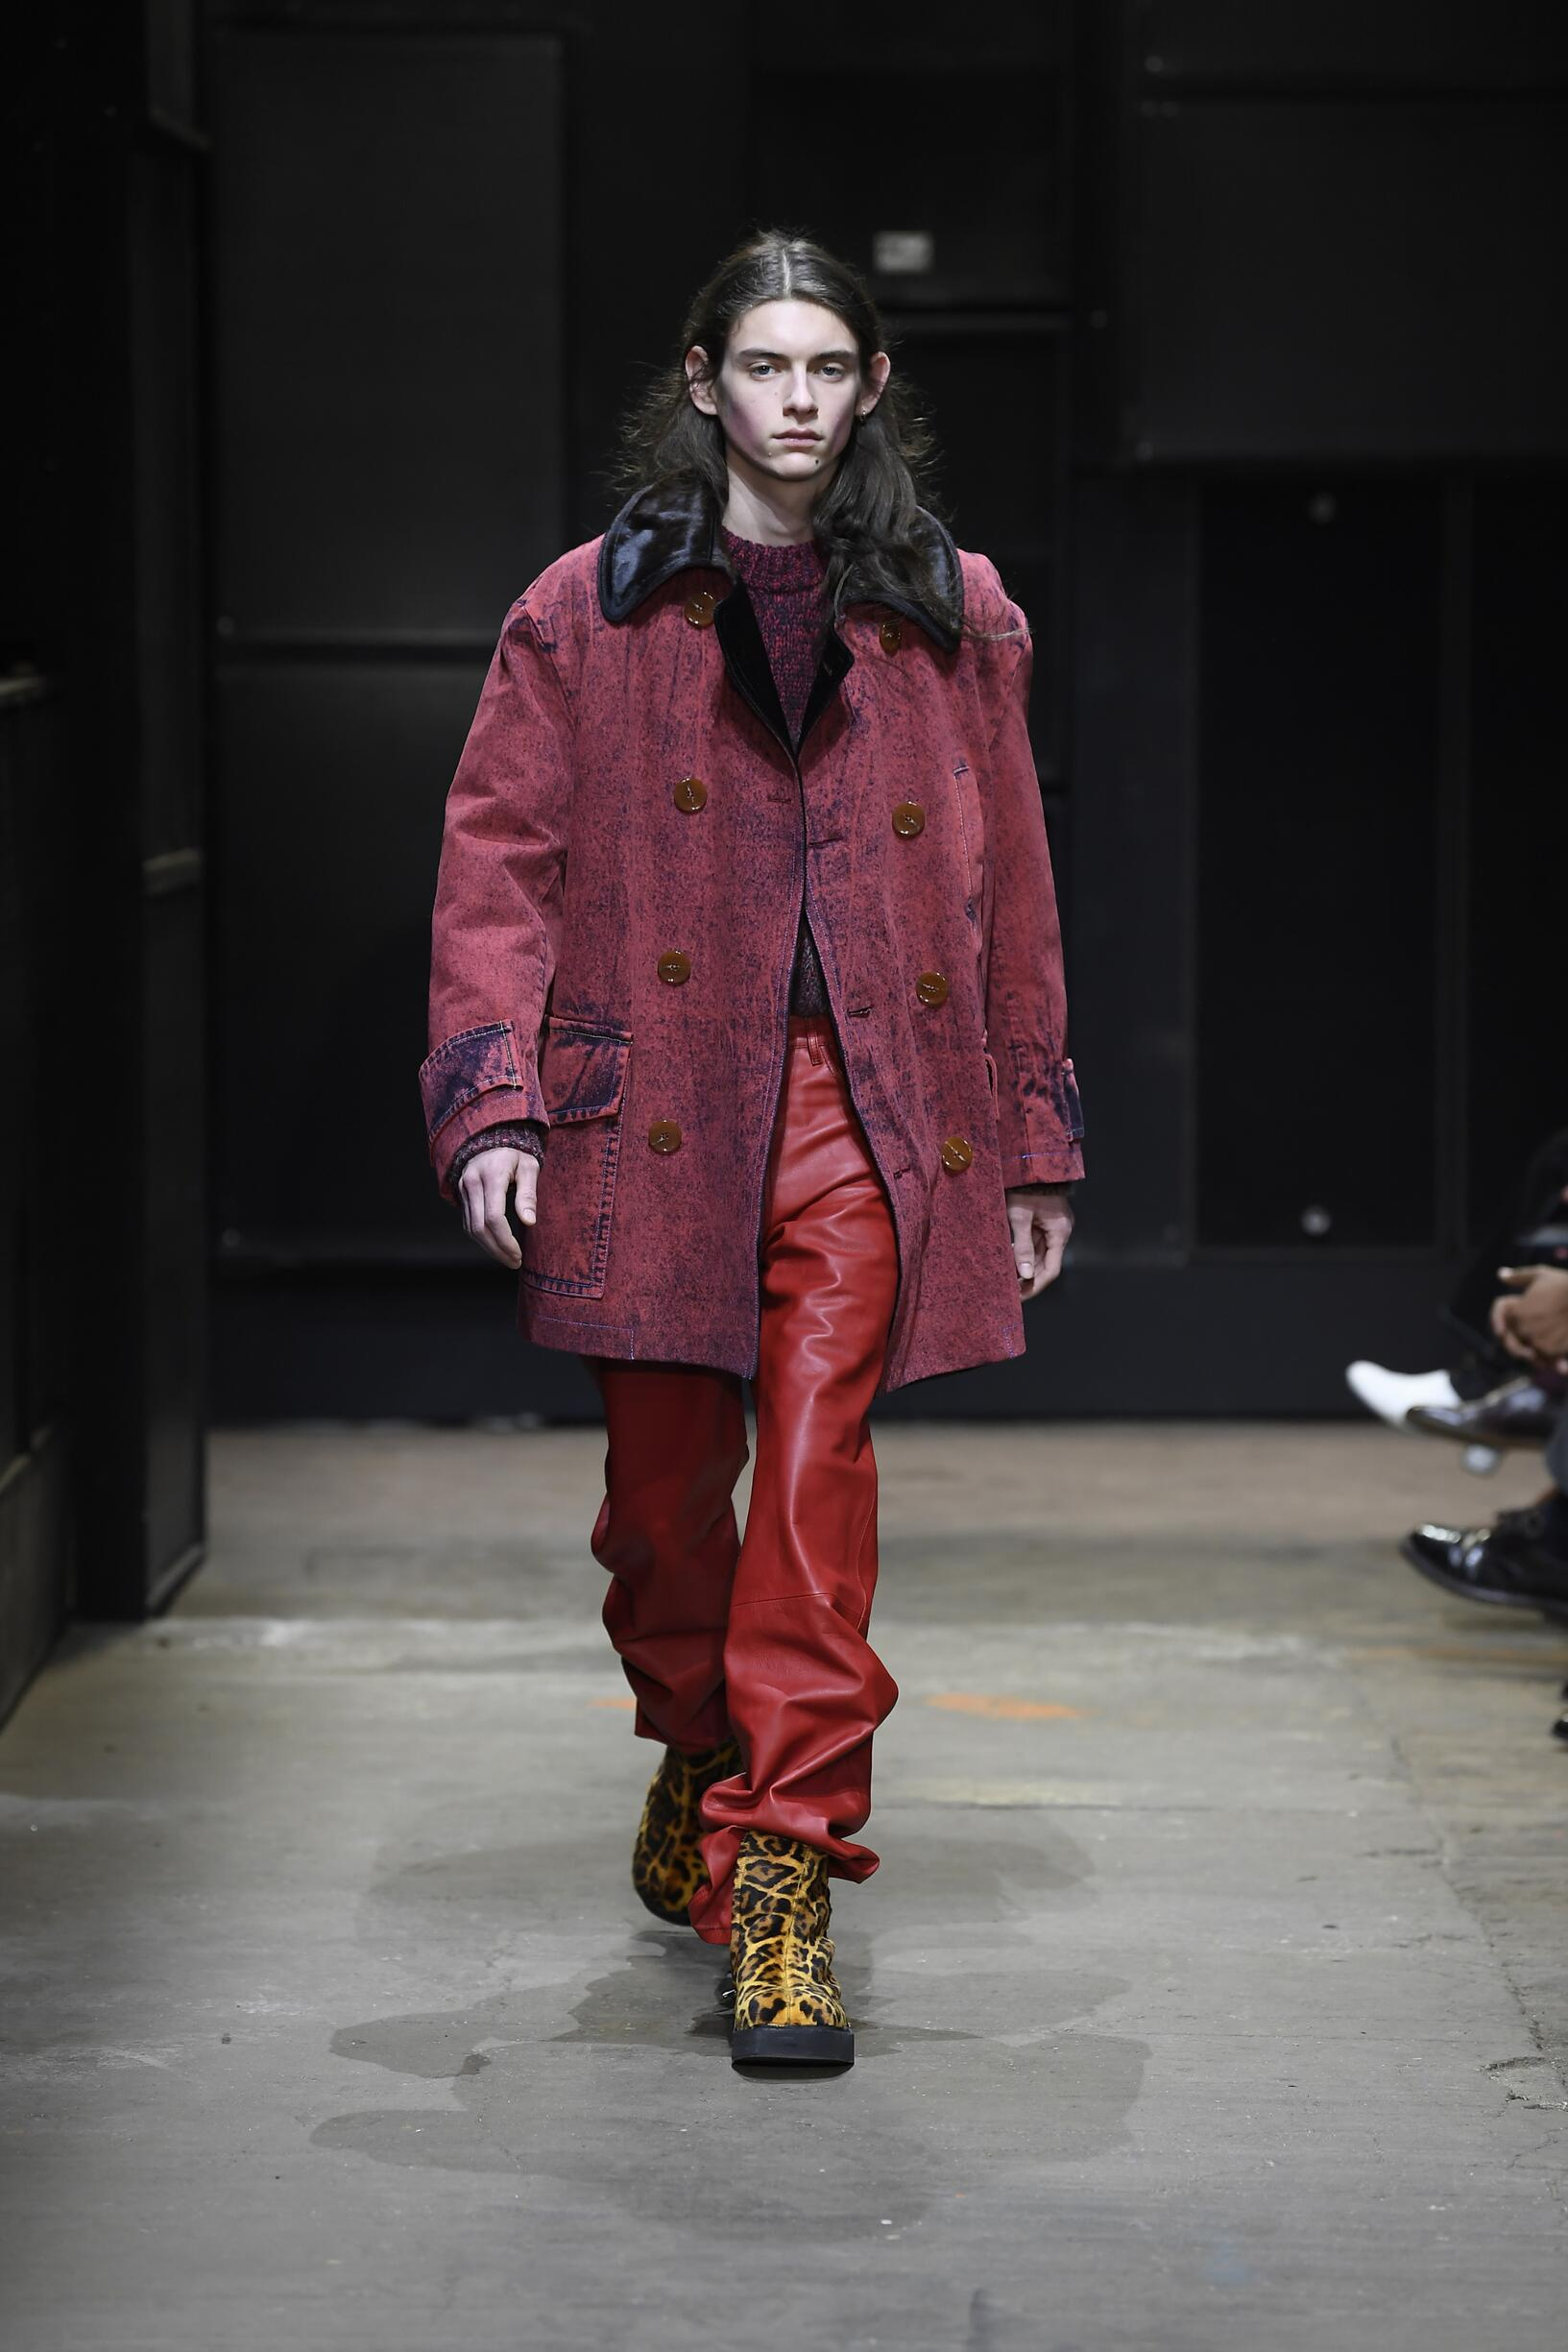 Catwalk Marni Man Fashion Show Winter 2019